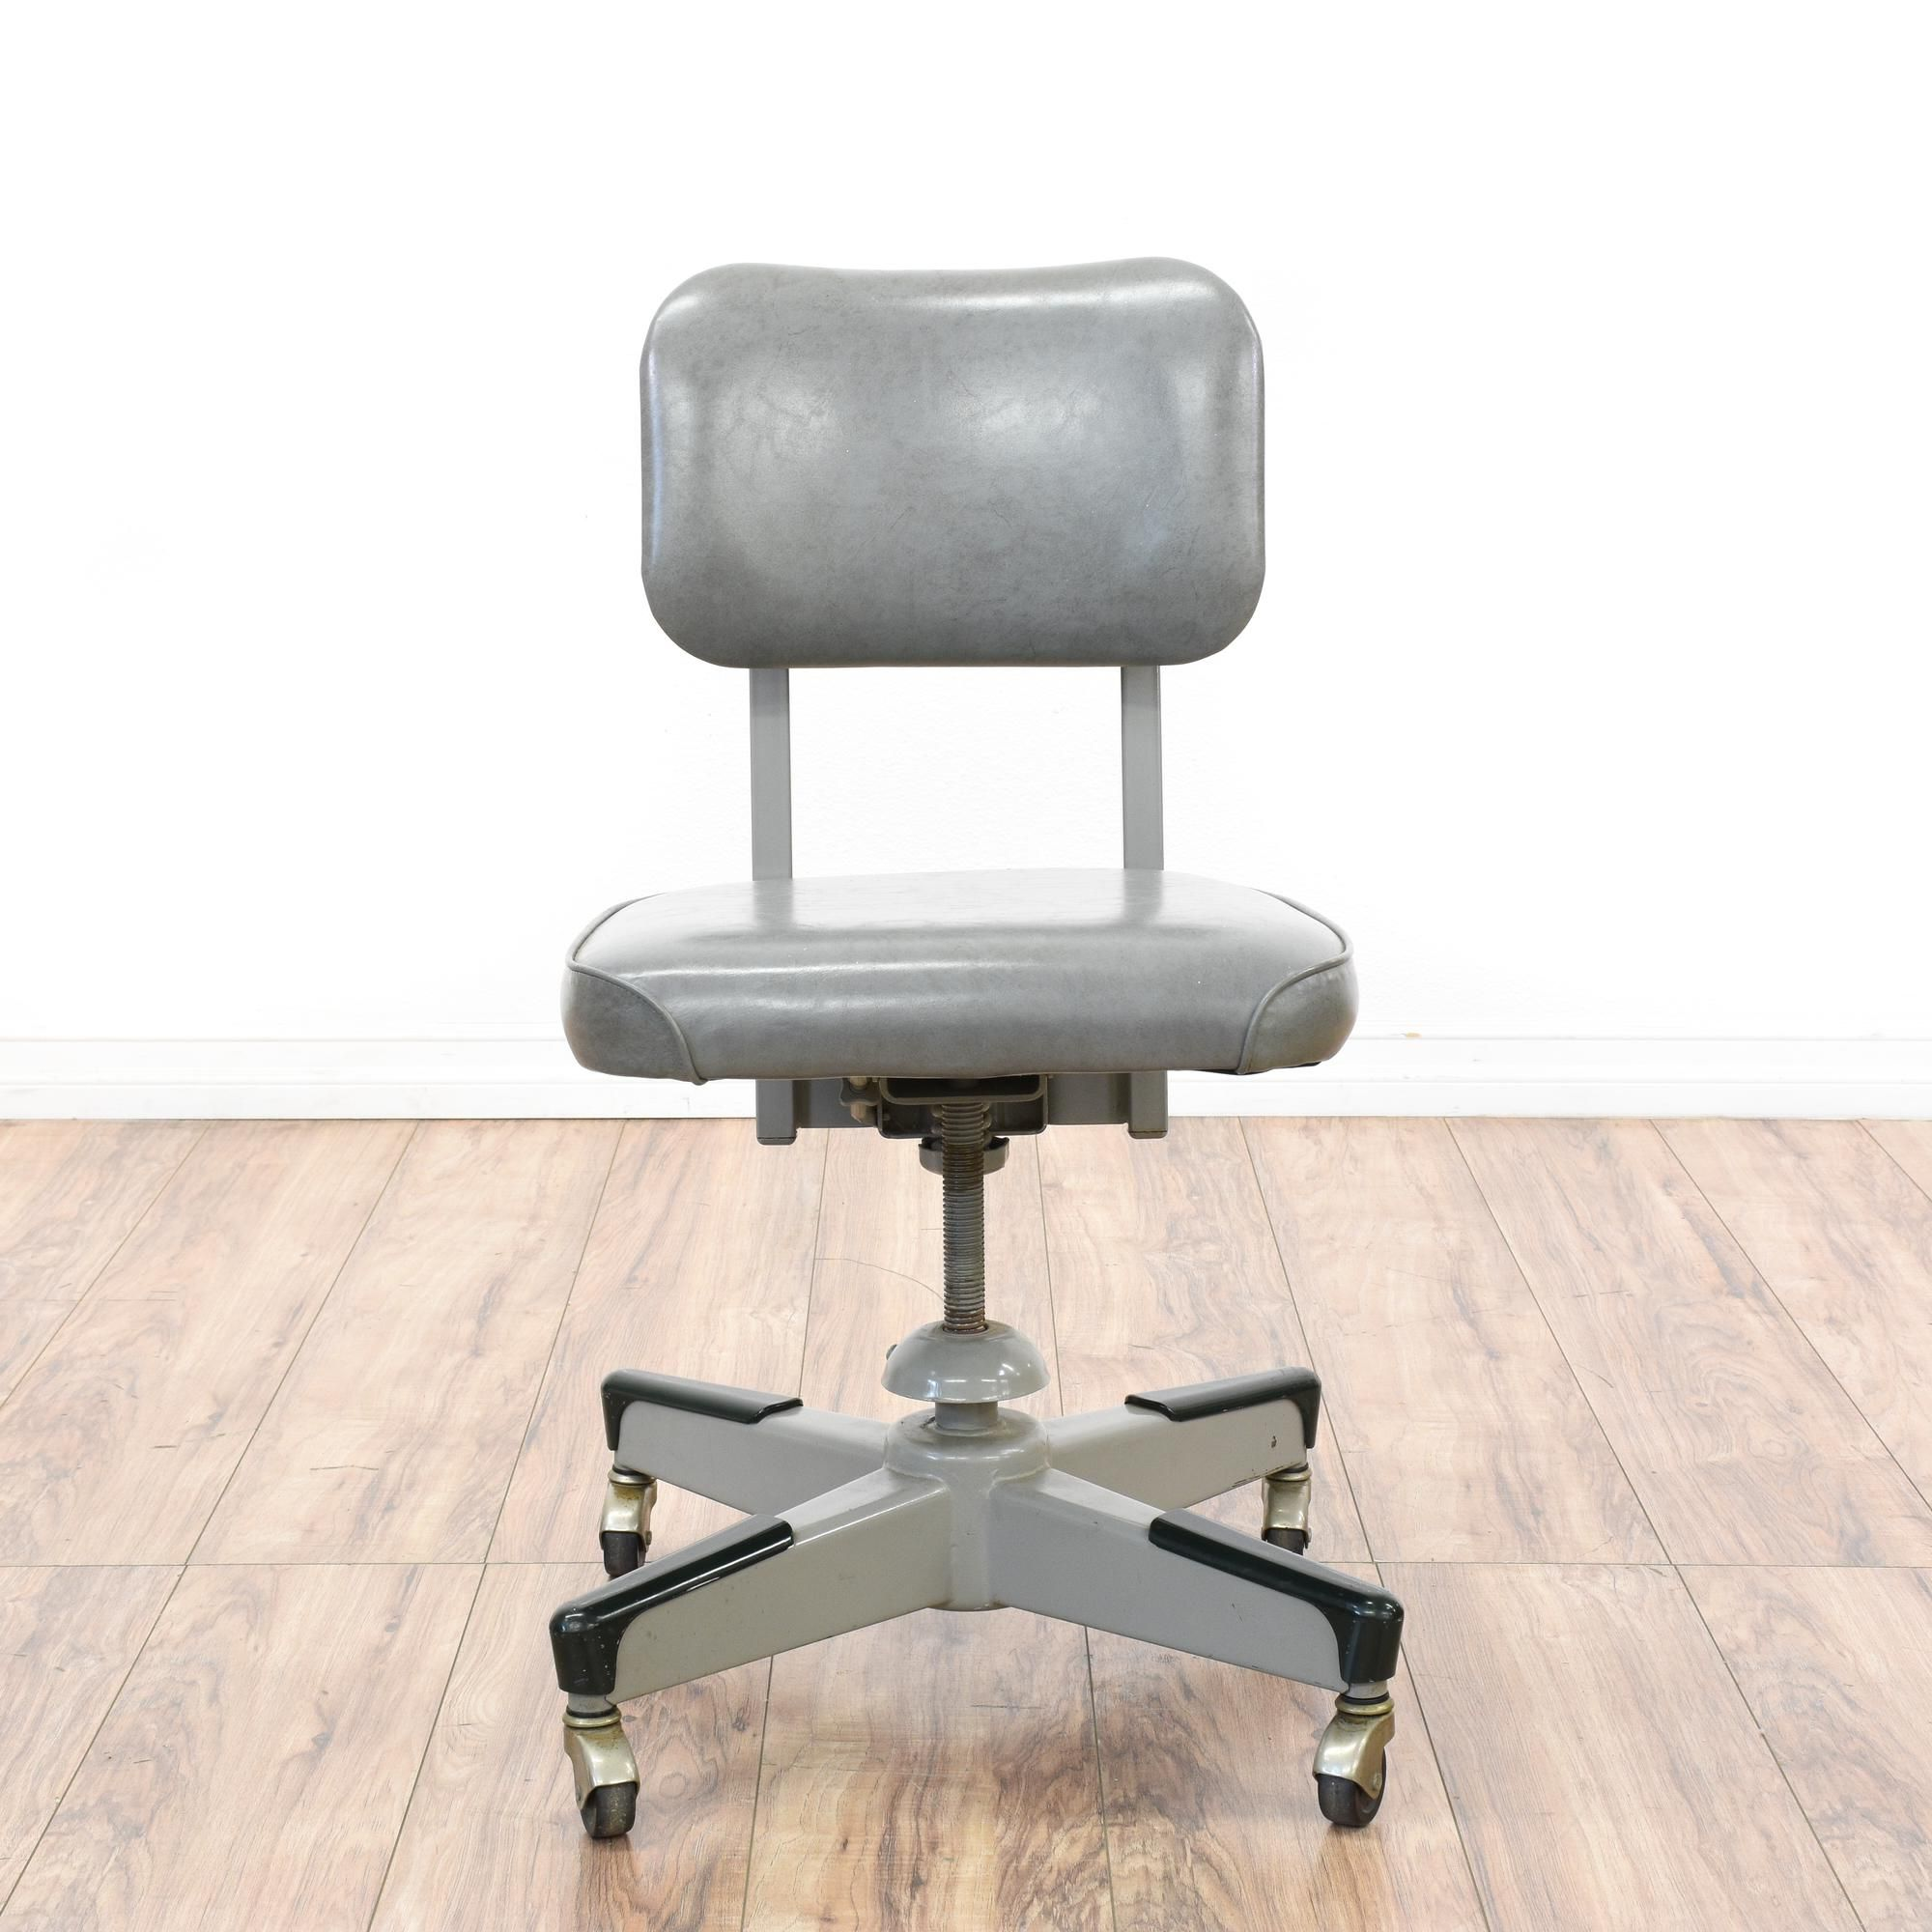 Industrial Office Chair This Retro Industrial Office Chair Is Featured In A